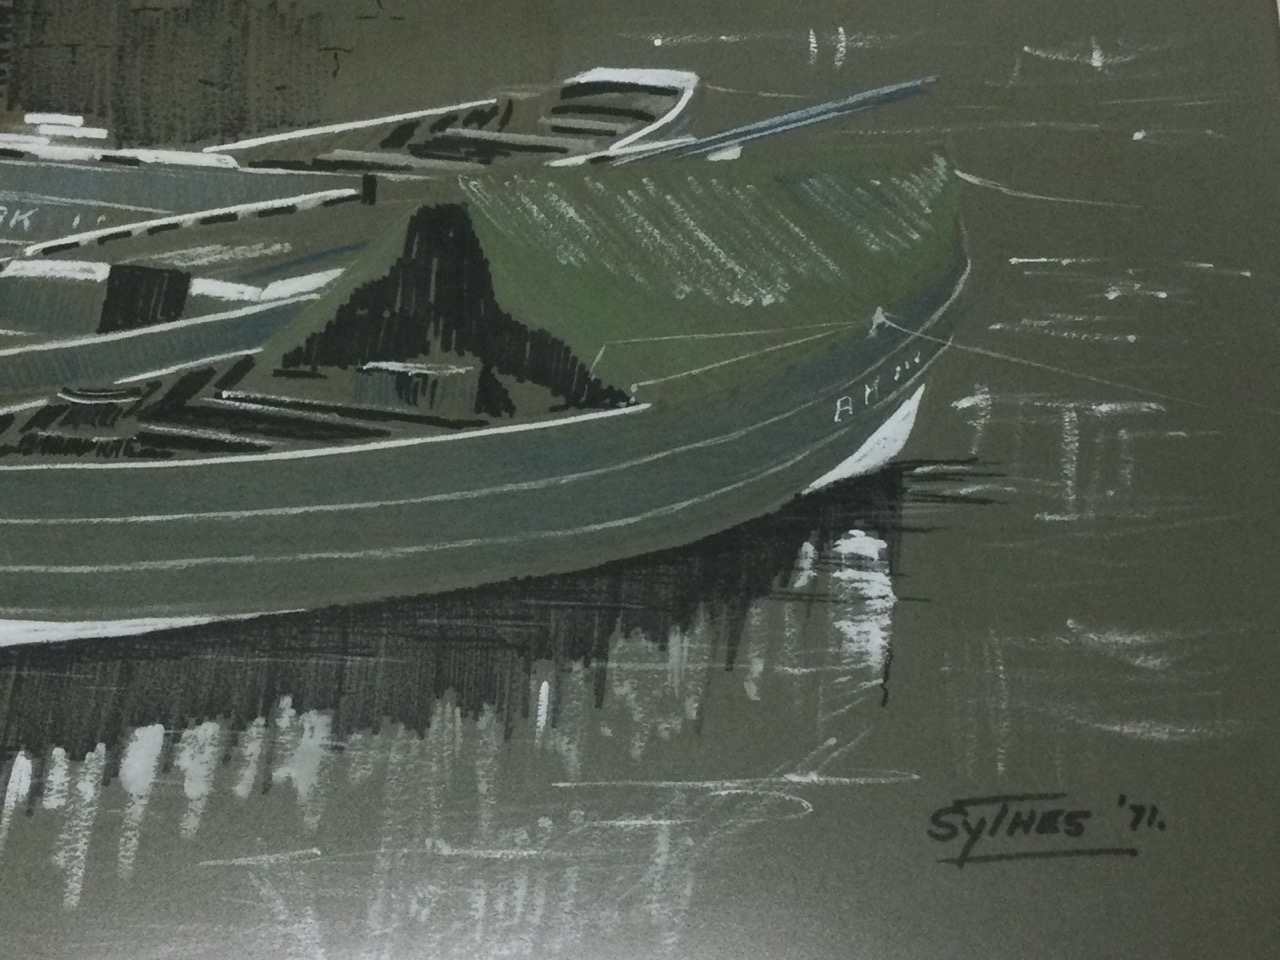 Scythes, pen, crayon & bodycolour on buff paper, boats tied up by quay wall, signed & dated 1971, - Image 2 of 3